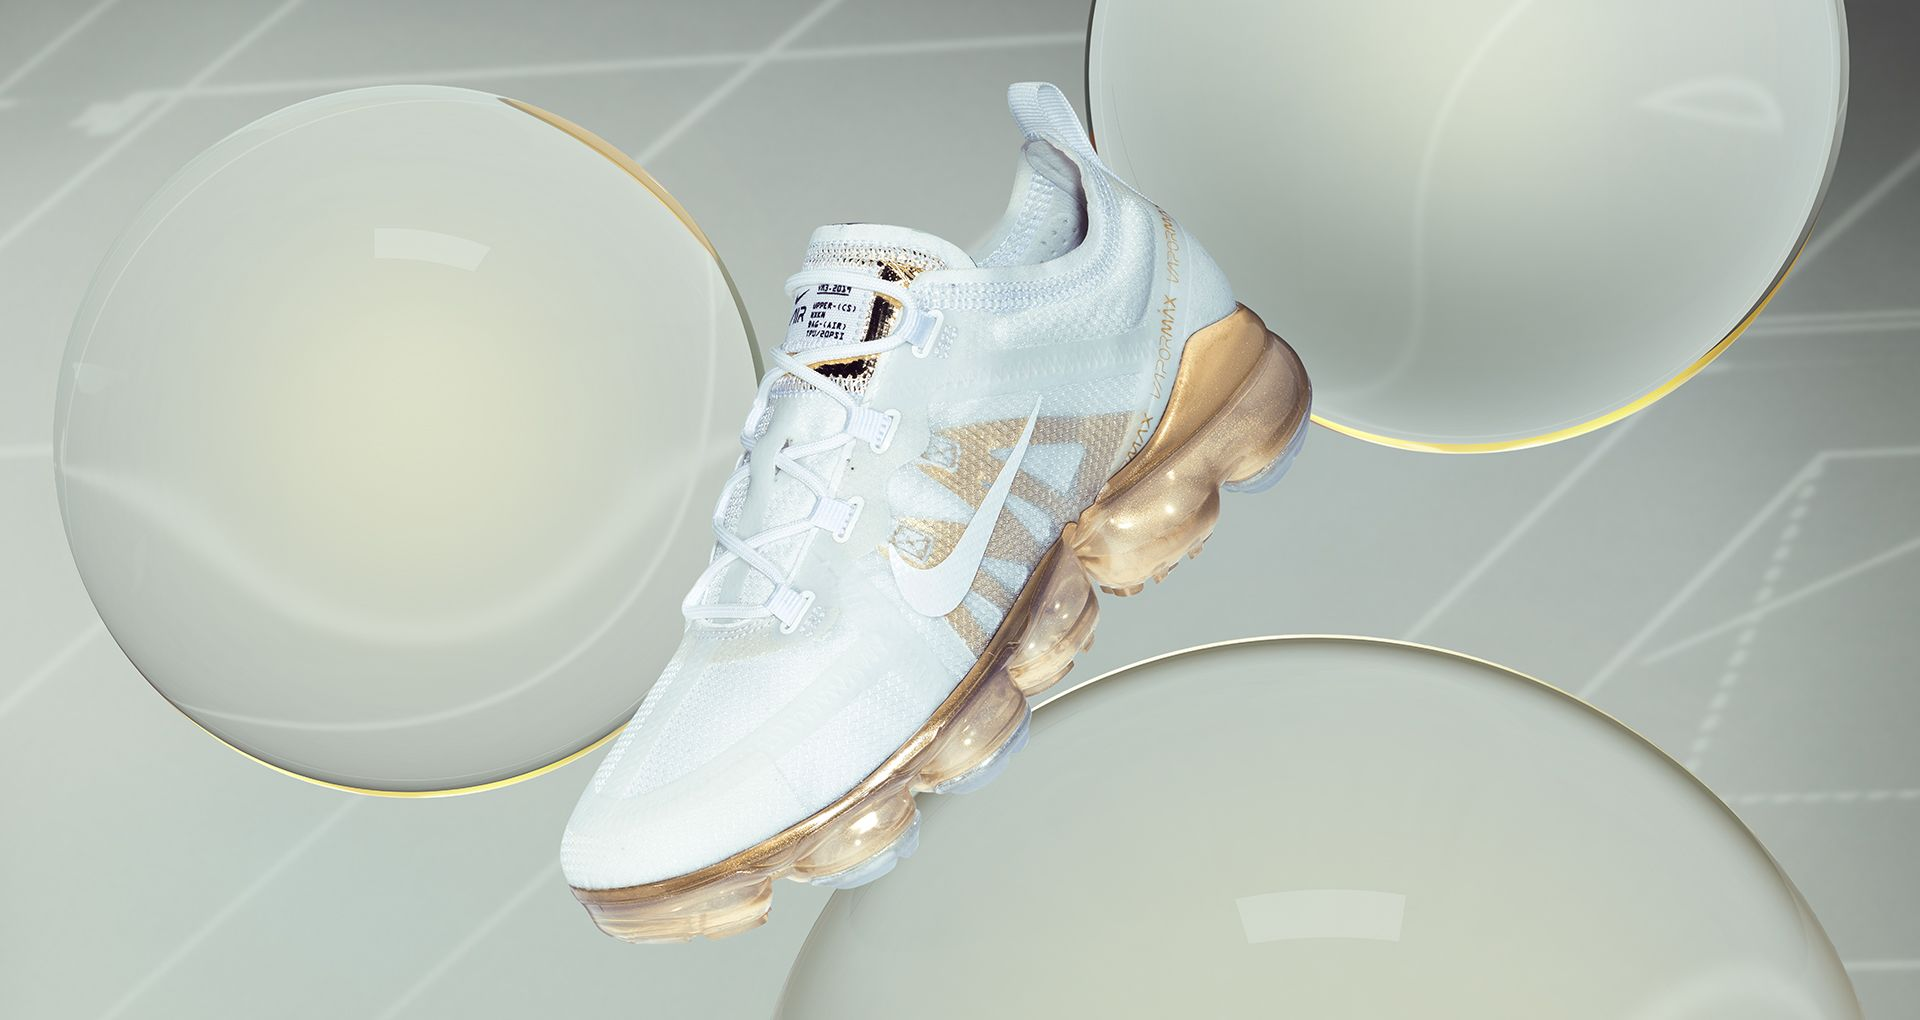 Women\u0027s Nike Air Vapormax 2019 \u0027White \u0026 Metallic Gold